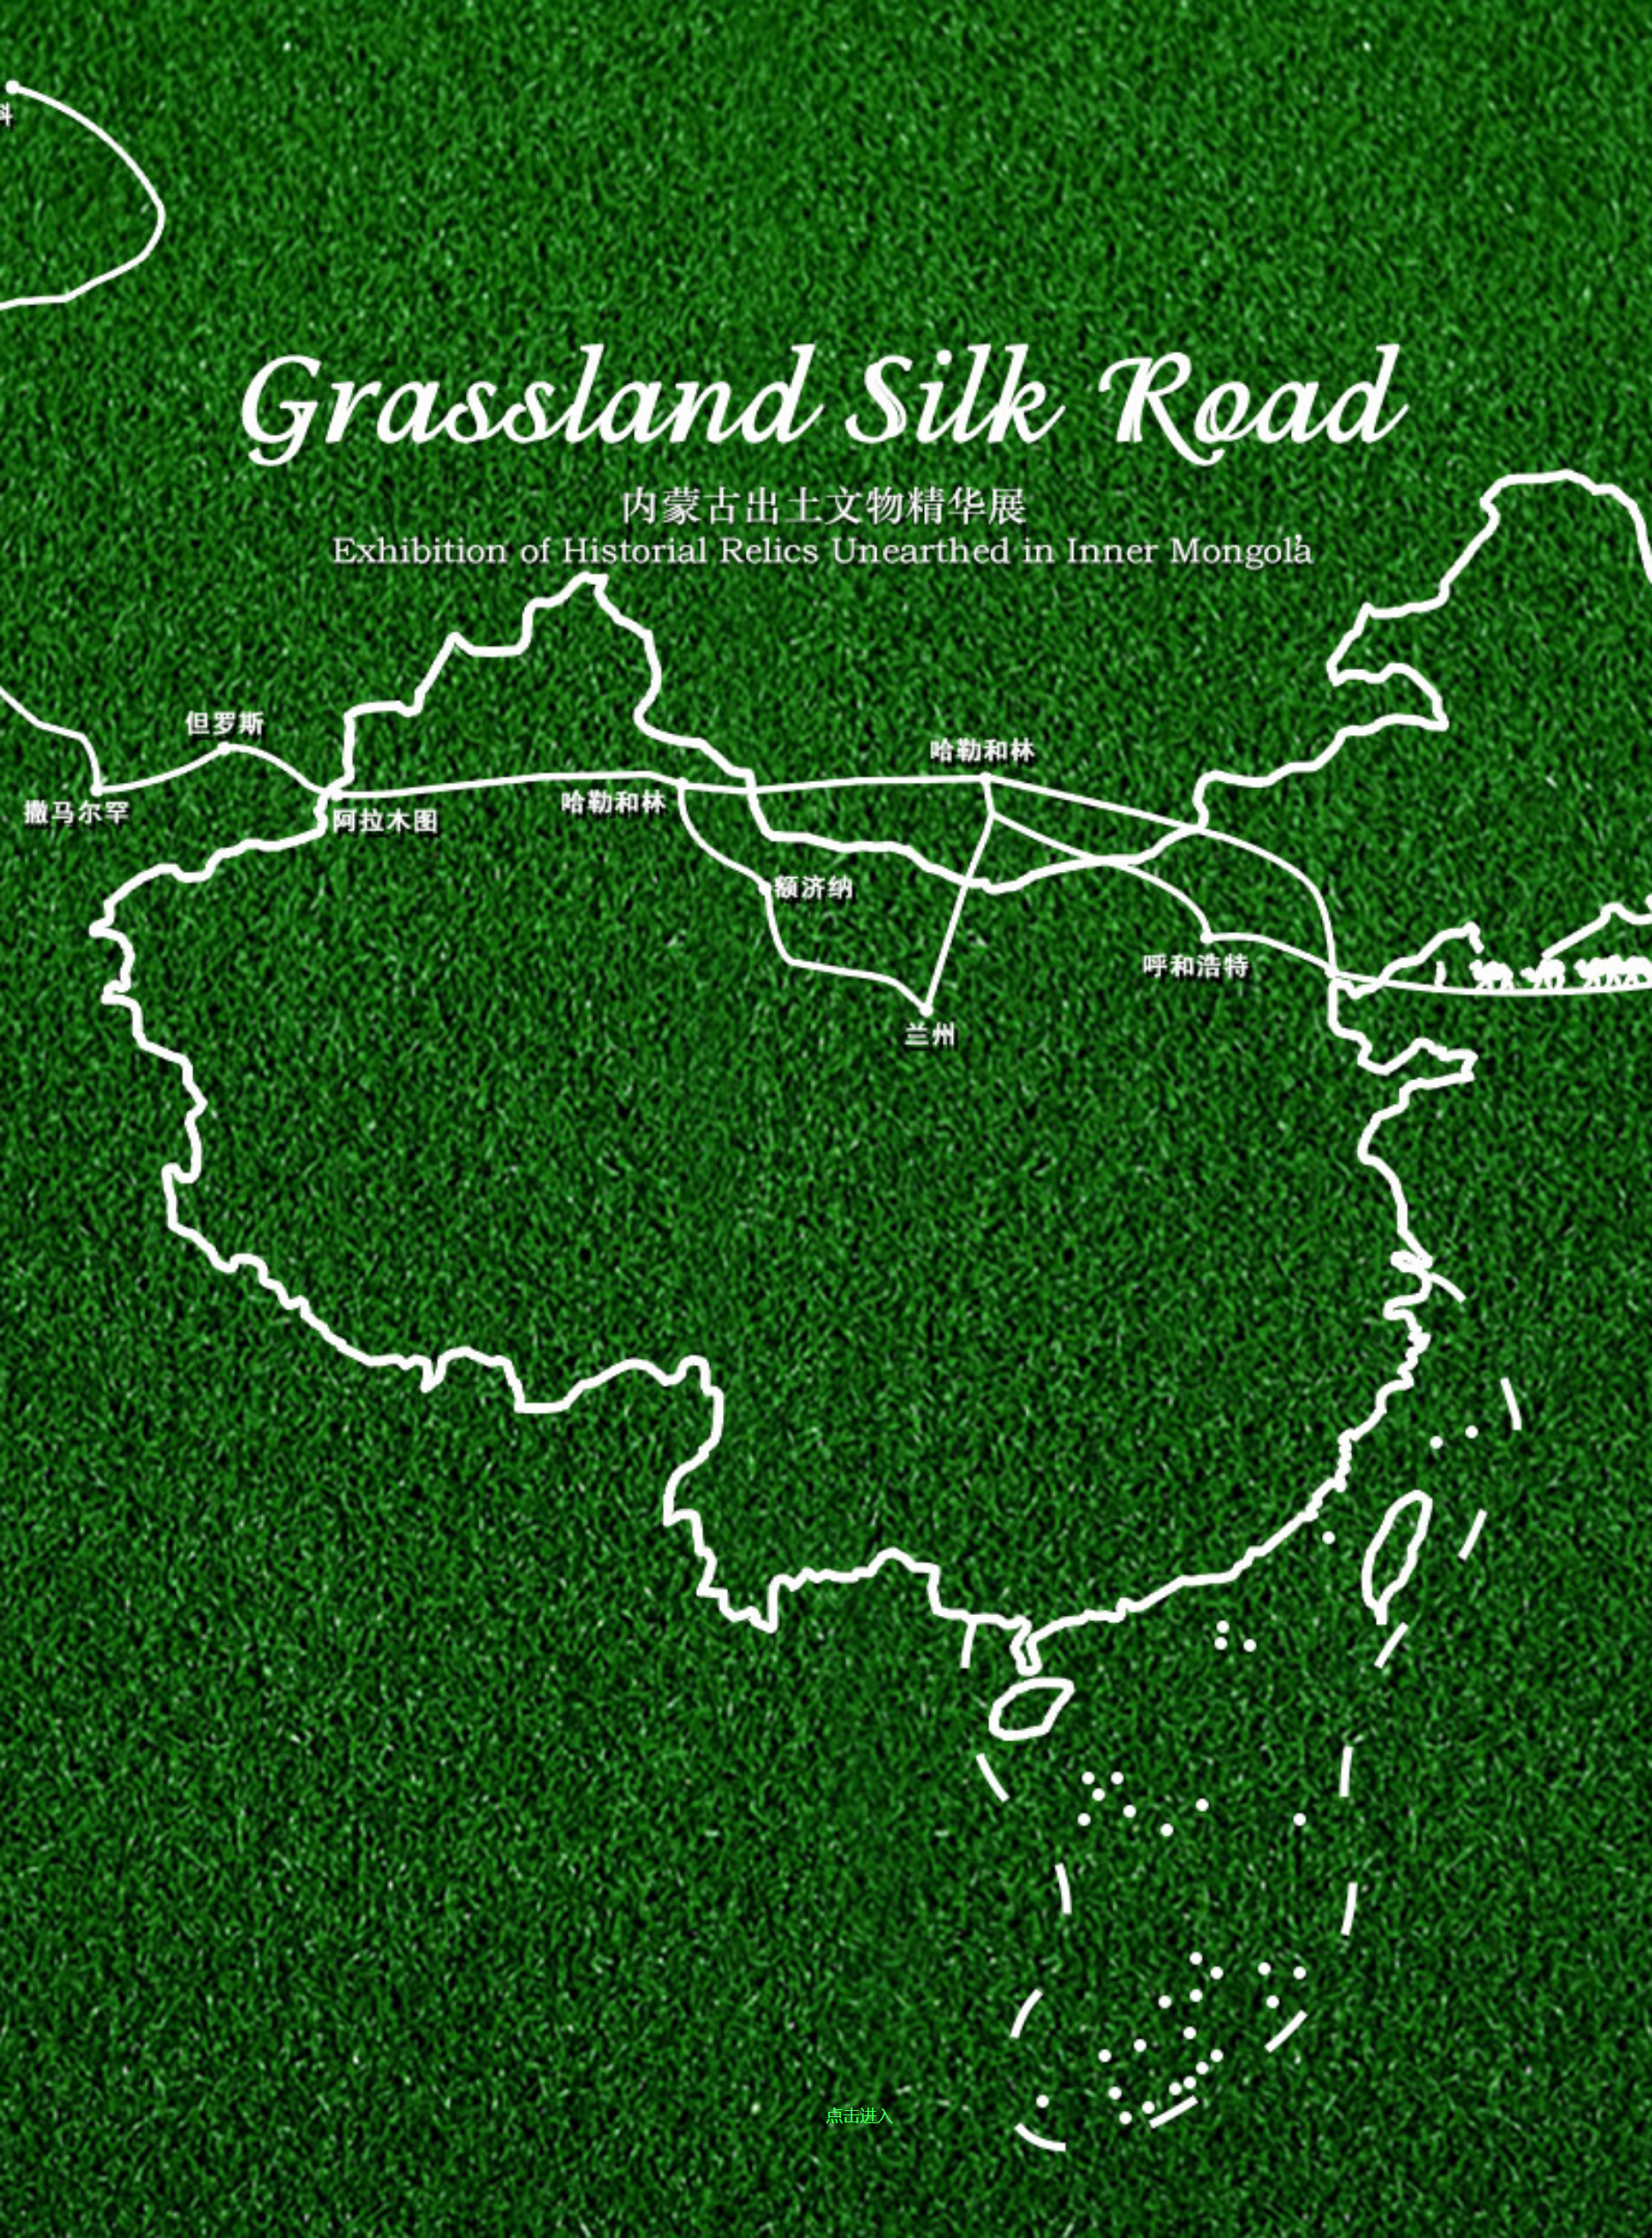 Grassland Silk Road: Exhibition of Historical Relics Unearthed in Inner Mongola